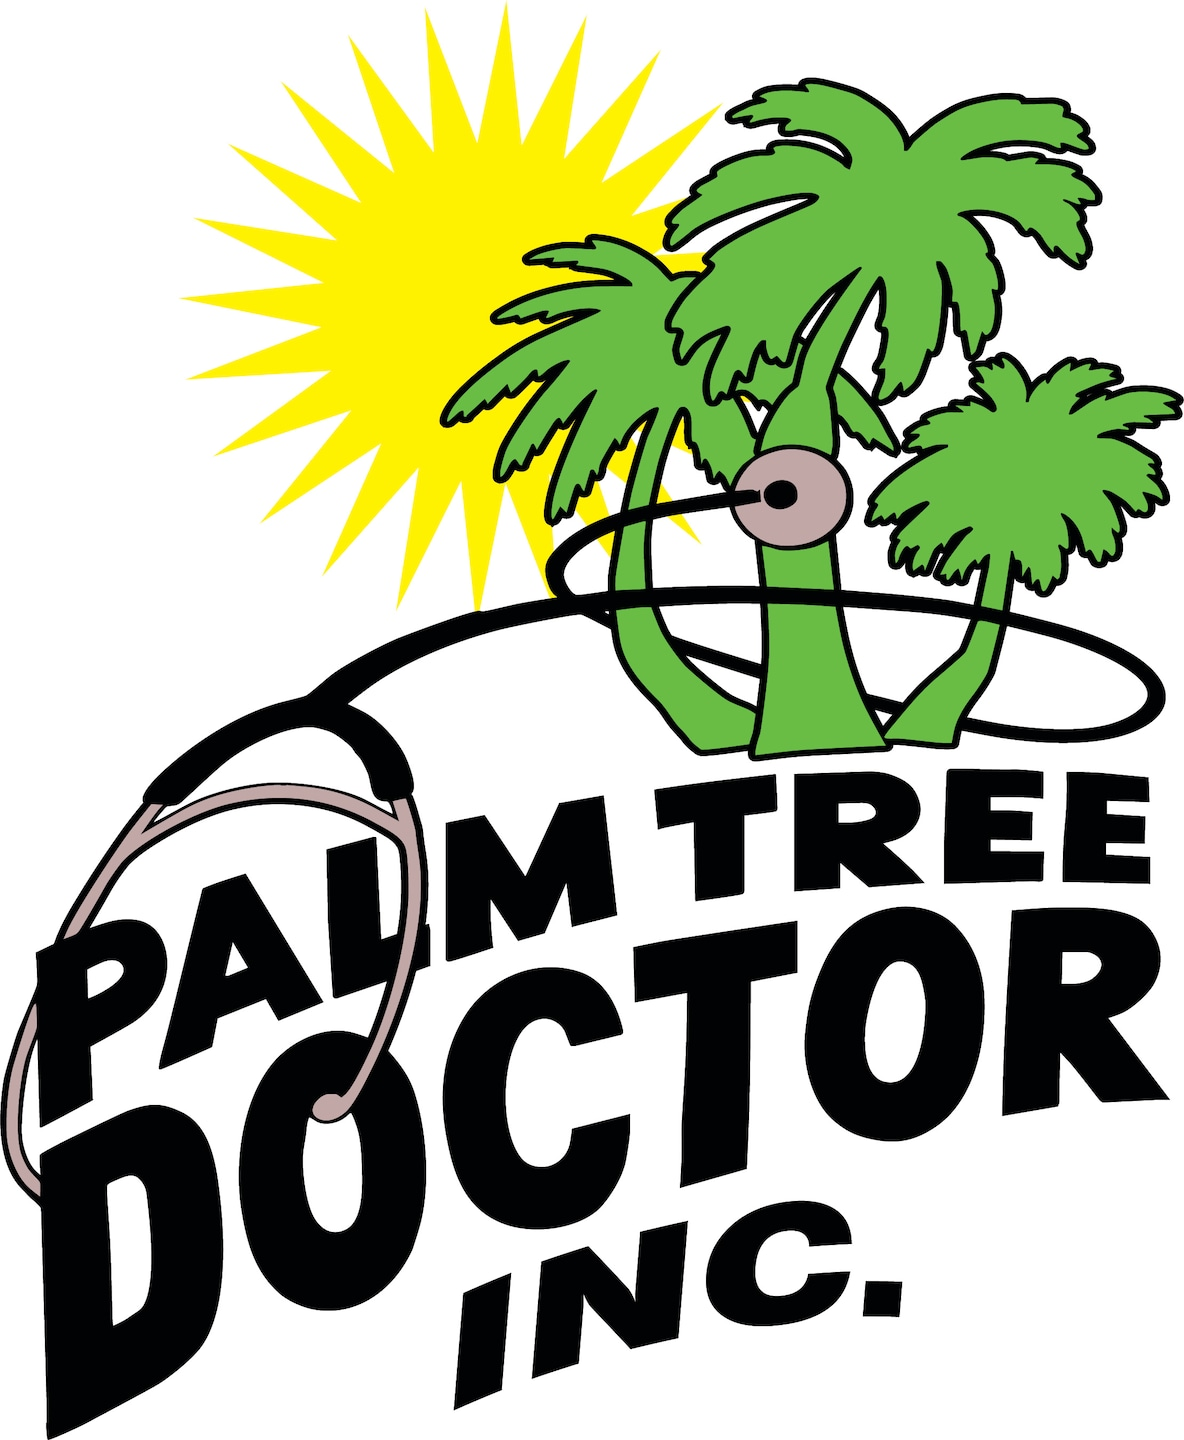 Palm Tree Doctor